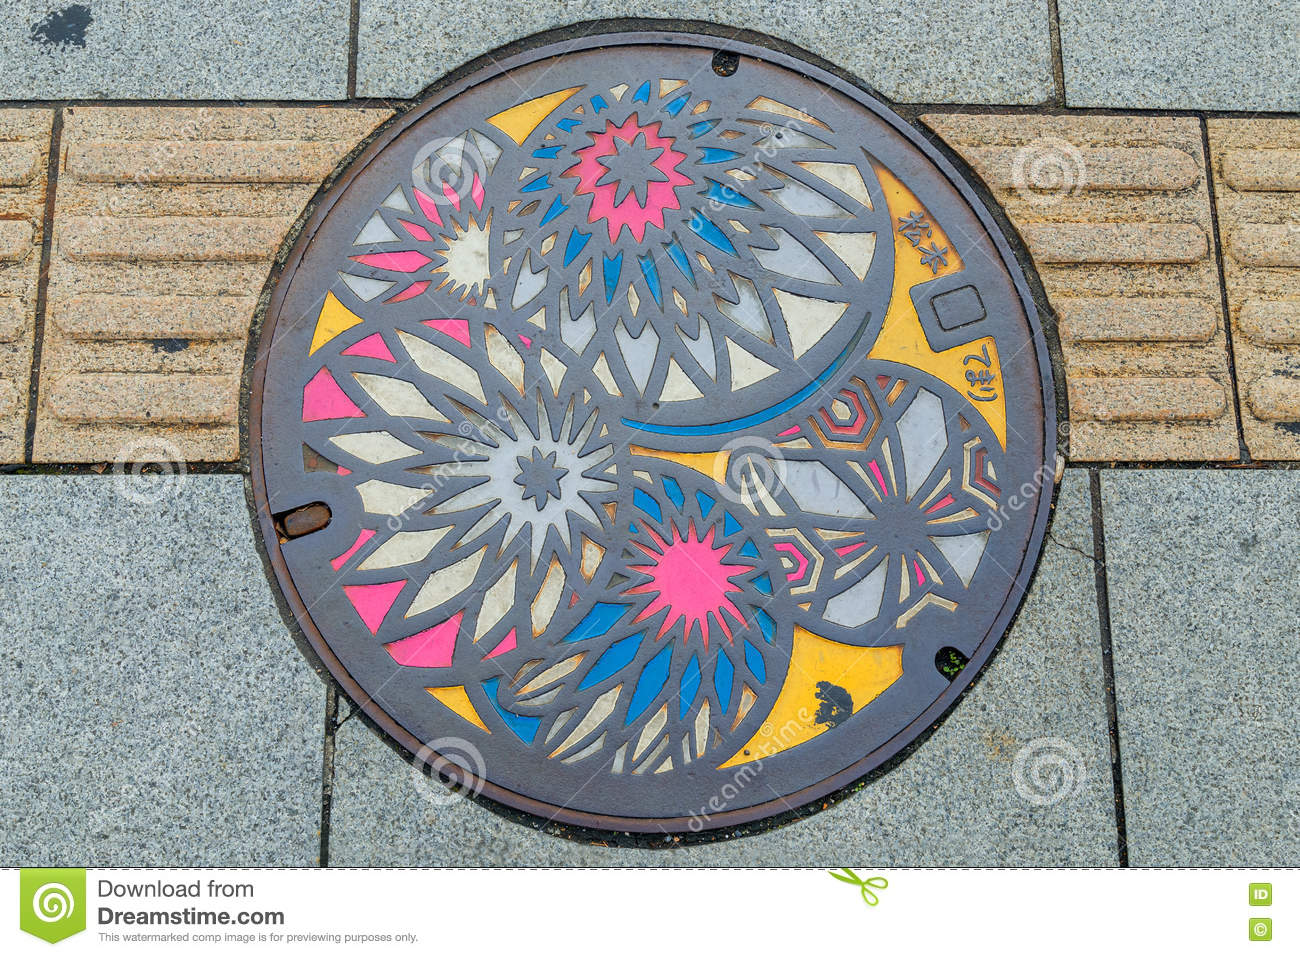 Colorful manhole cover in Matsumoto City